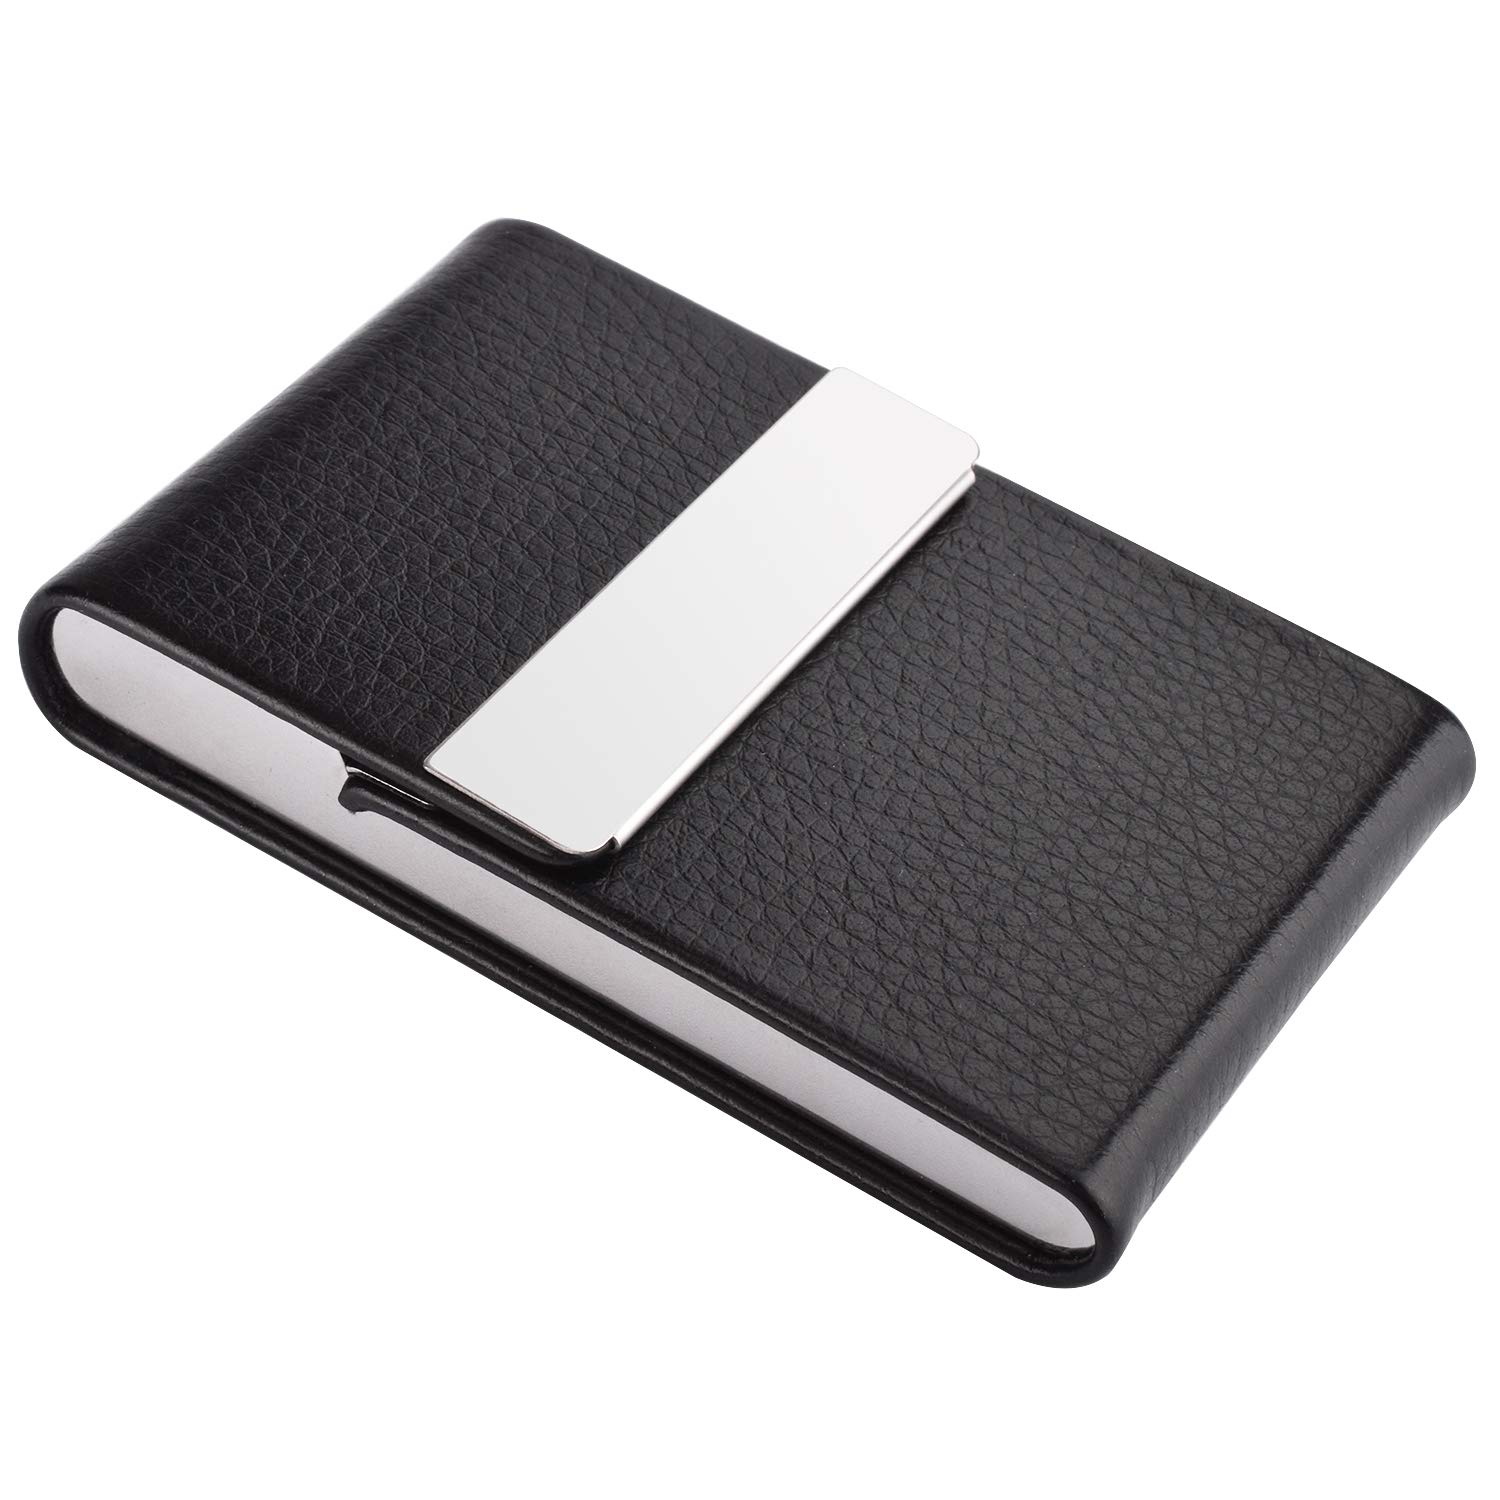 Maxgear Leather Business Card Case Fashion Business Card Holder With